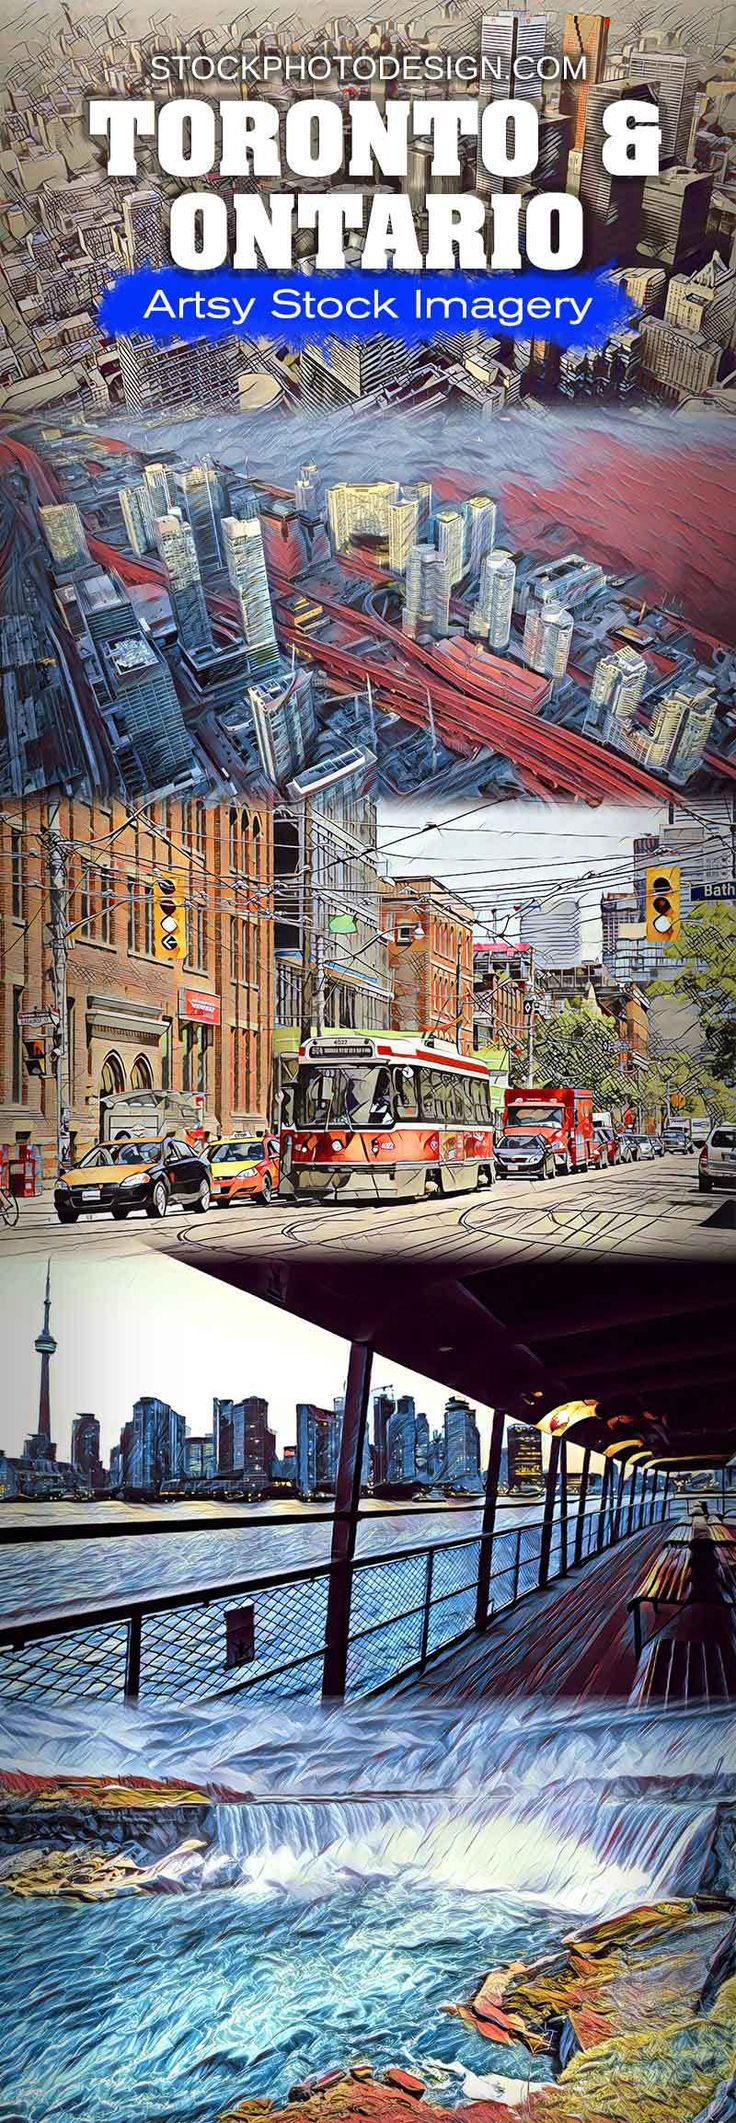 Toronto & Ontario - Artsy RF Stock Images at Great Prices - Stockphotodesign.com